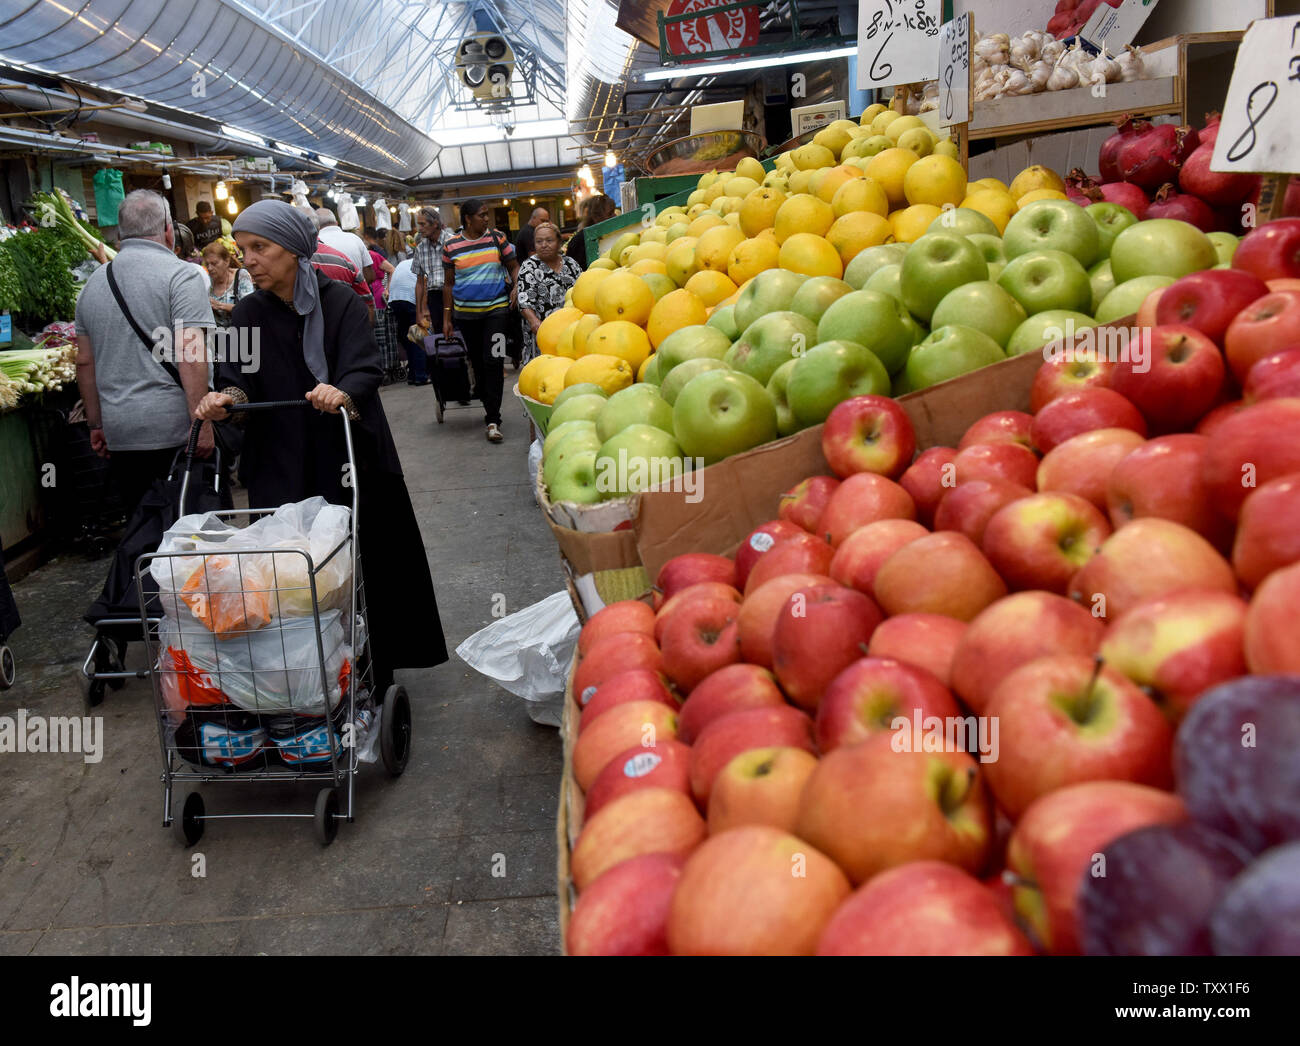 An Orthodox Jewish woman shops in the Mahane Yehuda Market in Jerusalem, Israel,  September 5, 2018, in preparation for Rosh HaShana, the Jewish New Year, which starts at sundown on Sunday, September 9, 2018. Pomegranates, apples and honey are traditionally eaten during the Jewish High holidays which is the period of repentance in the Jewish calendar. The abundance of seeds in the pomegranate is associated with the 613 commandments in the Torah and serve as symbols of righteousness and fruitfulness.  Photo by Debbie Hill/UPI - Stock Image